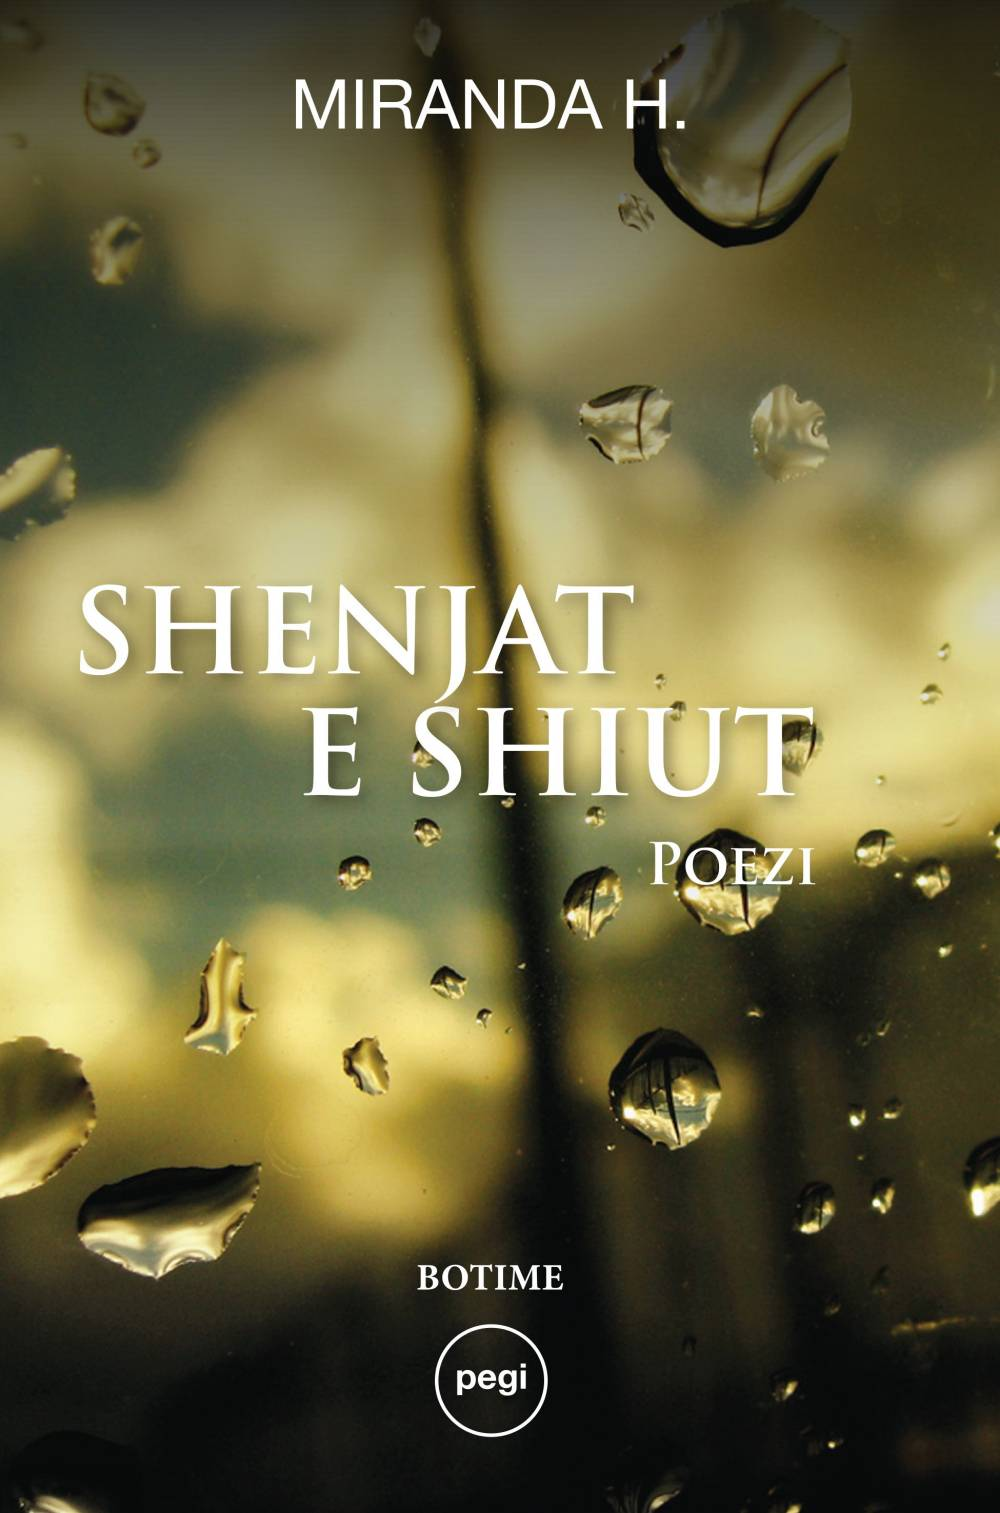 images/book-images/shenjat-e-shiut.jpg